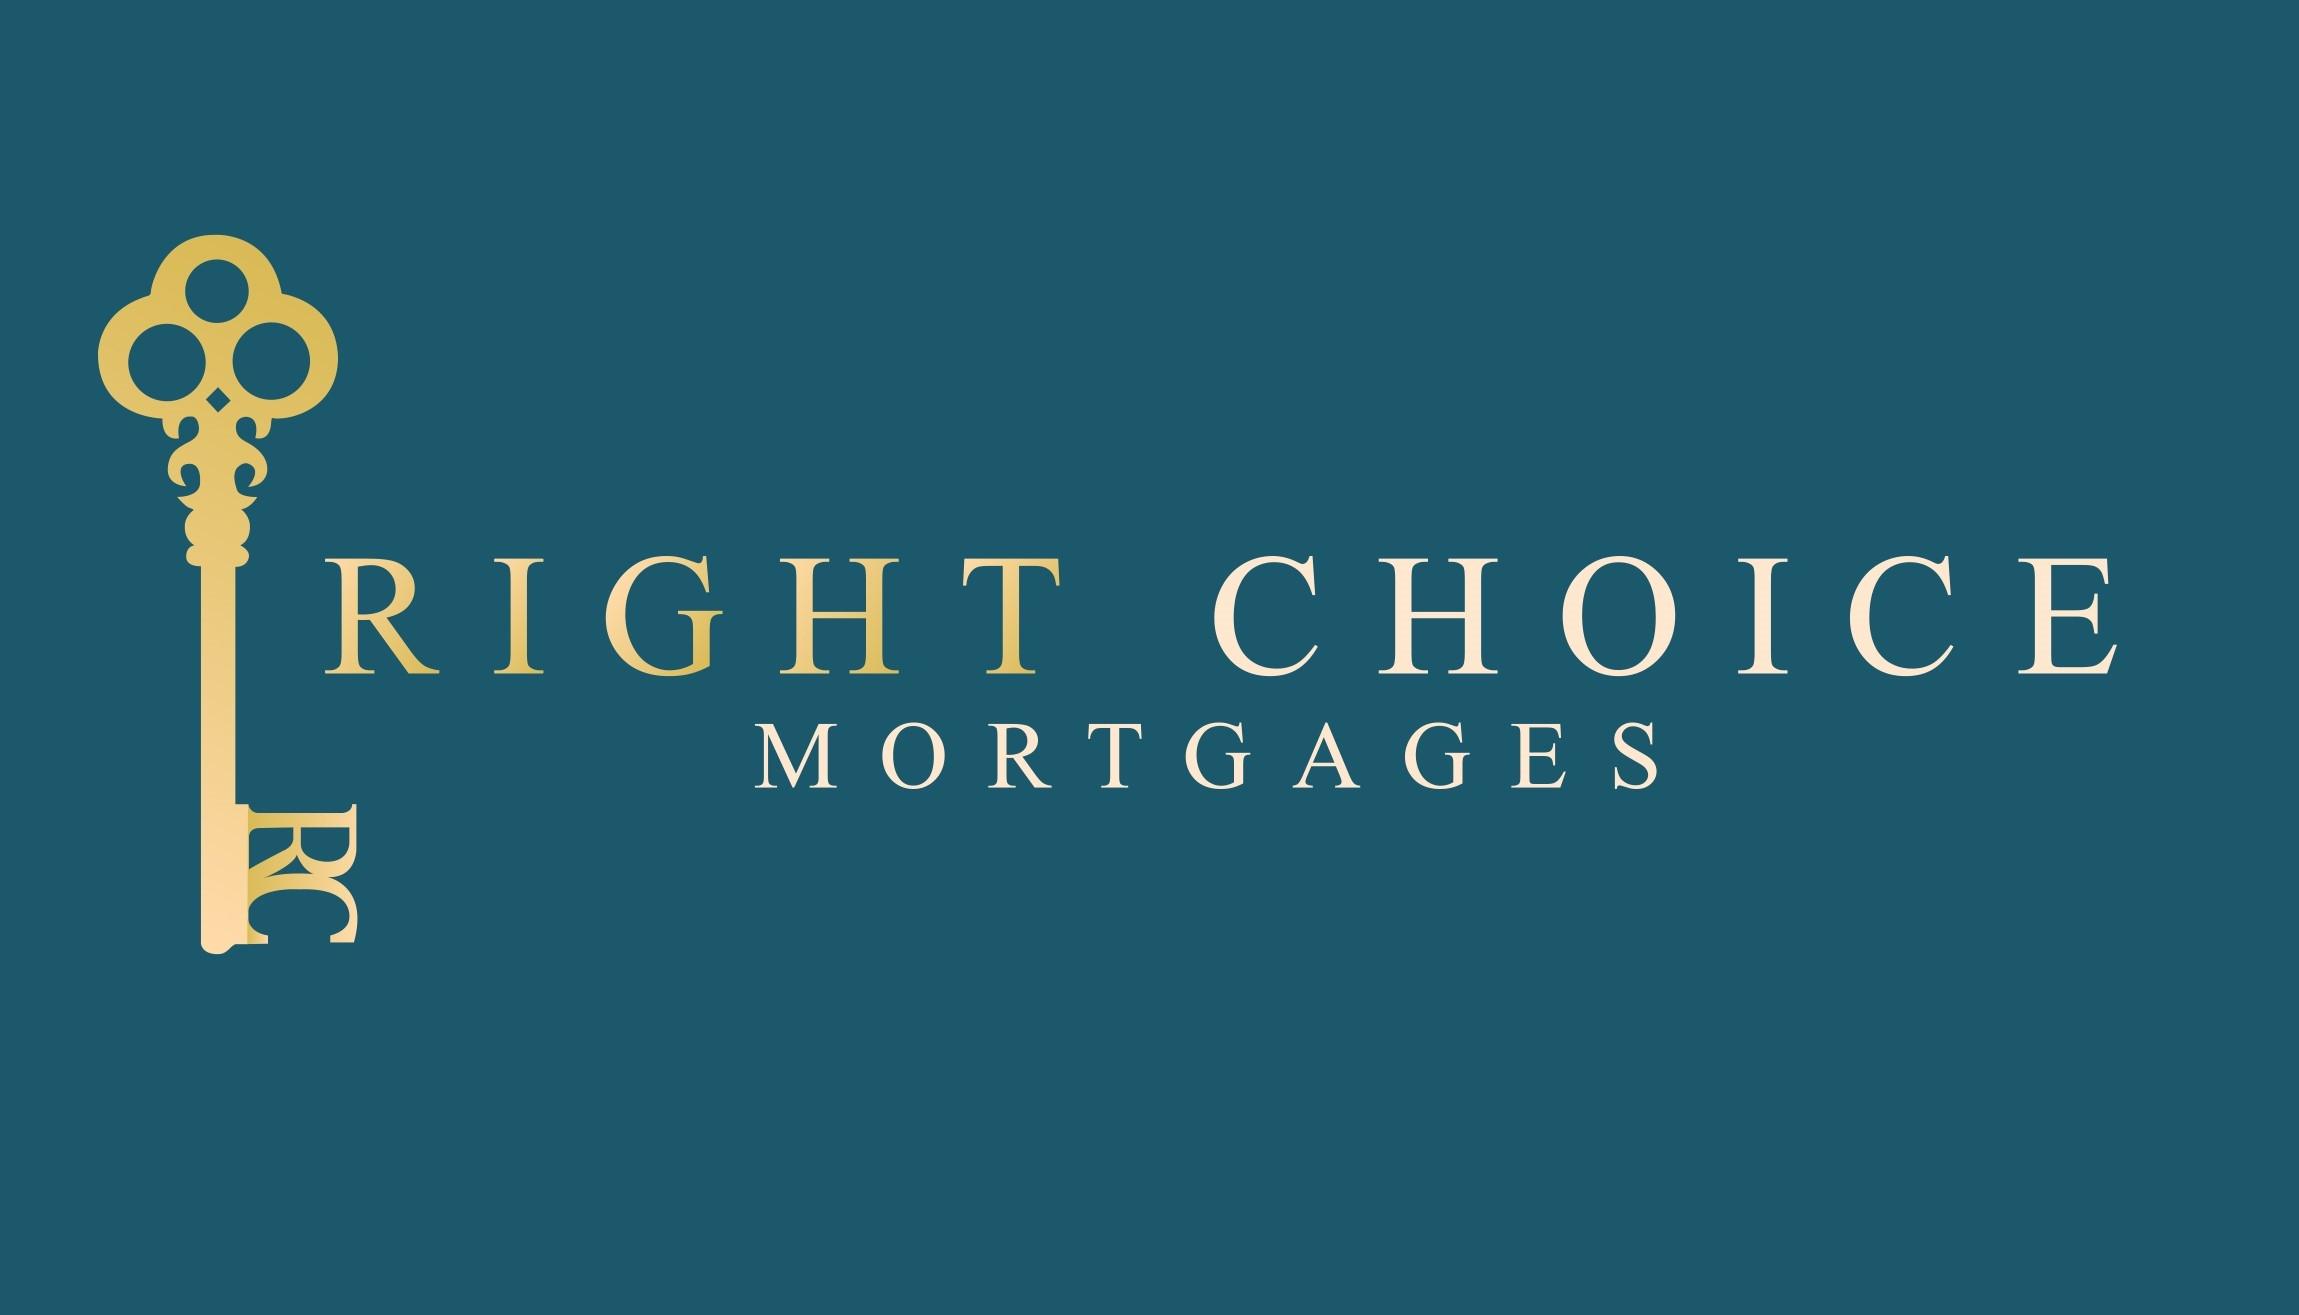 Right Choice Mortgages